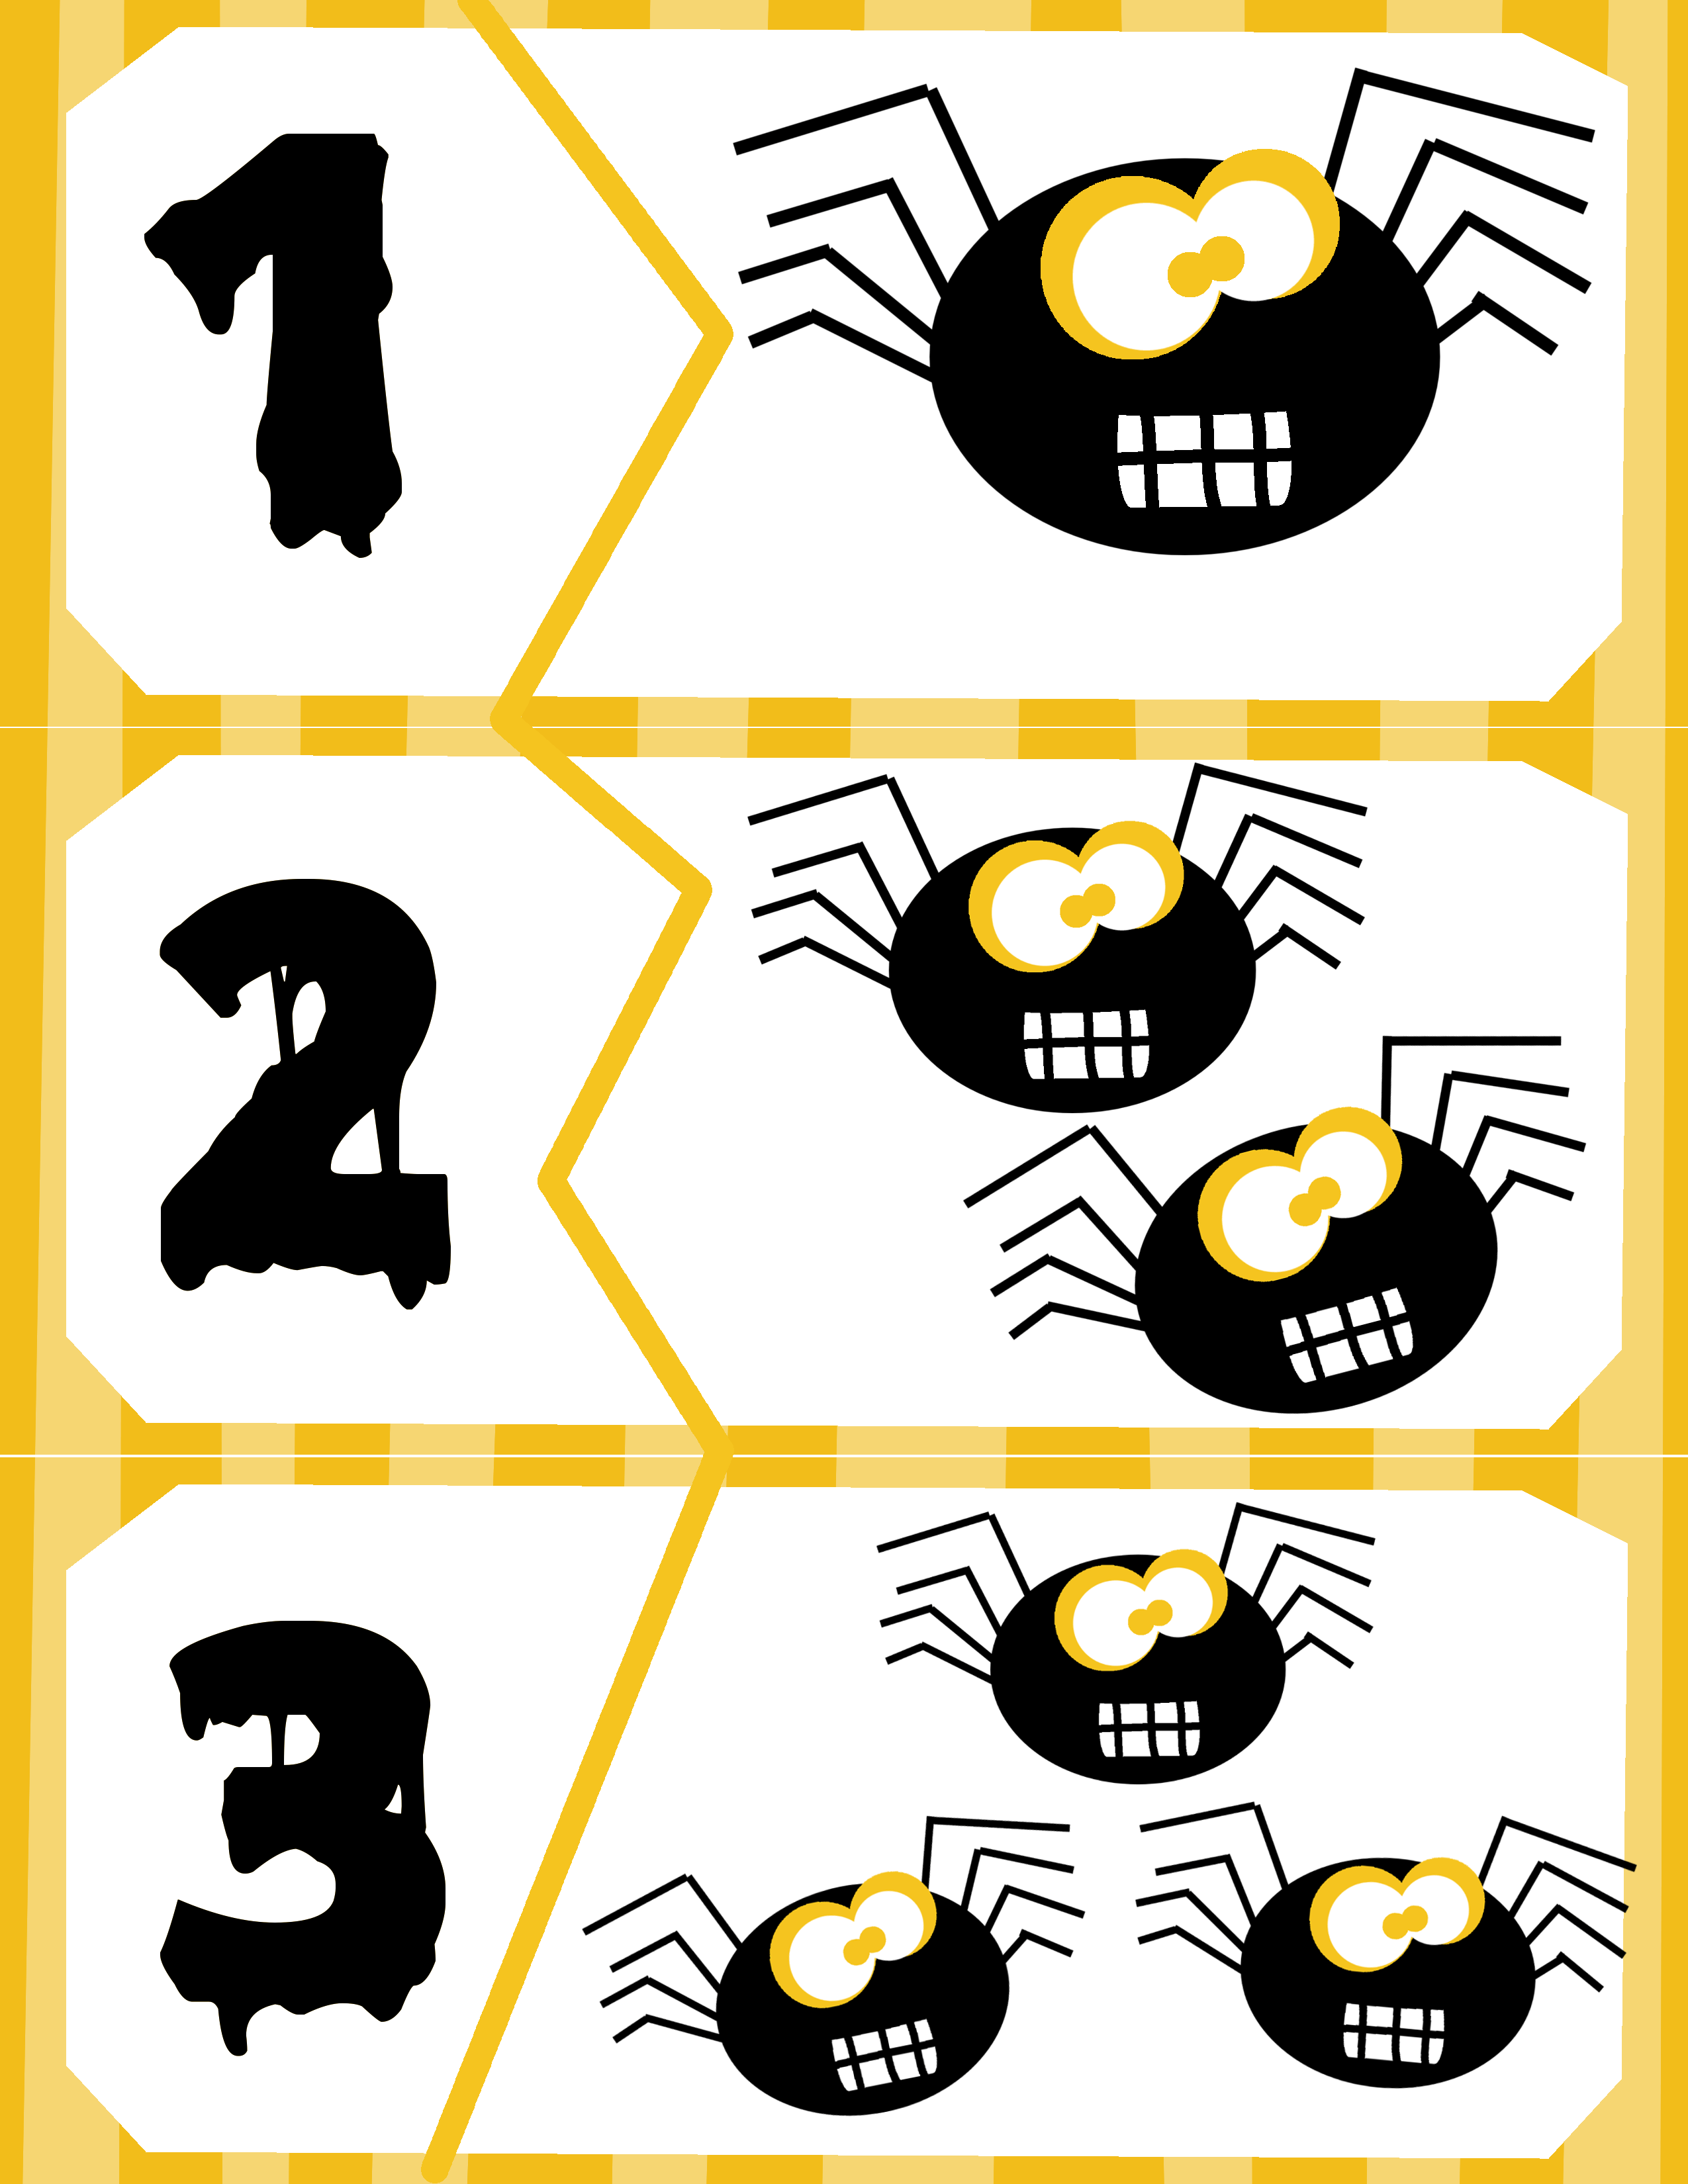 Spider Count Puzzles